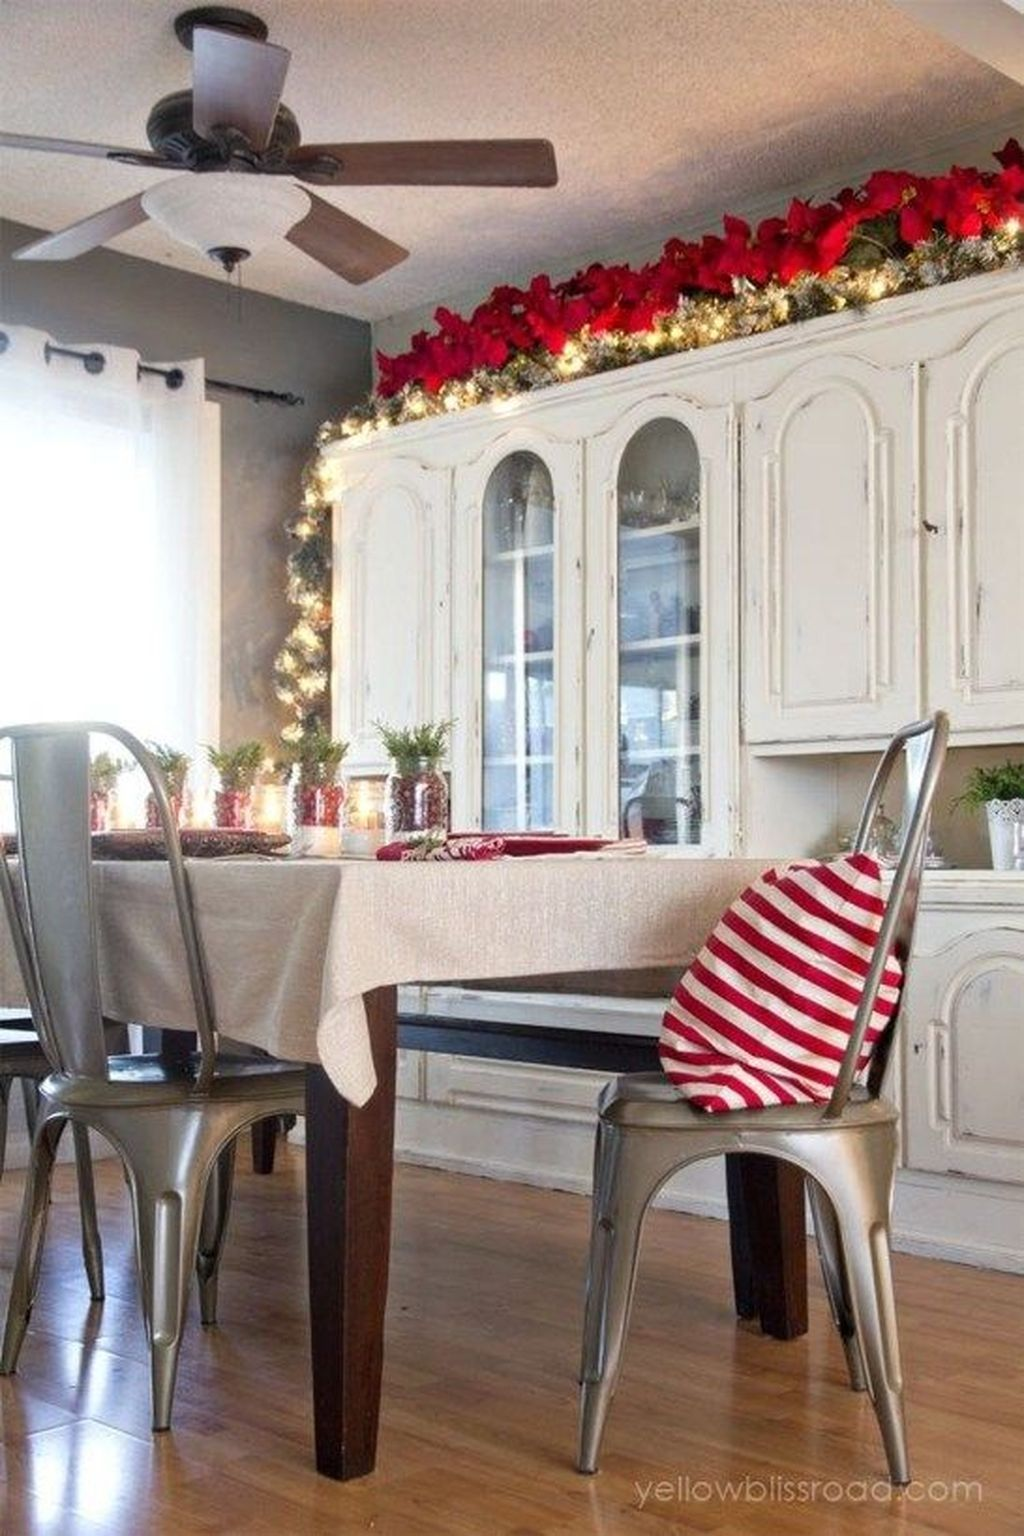 stylish 30 attractive christmas kitchen cabinets decorating ideas christmas kitchen decor on kitchen cabinets xmas decor id=88248